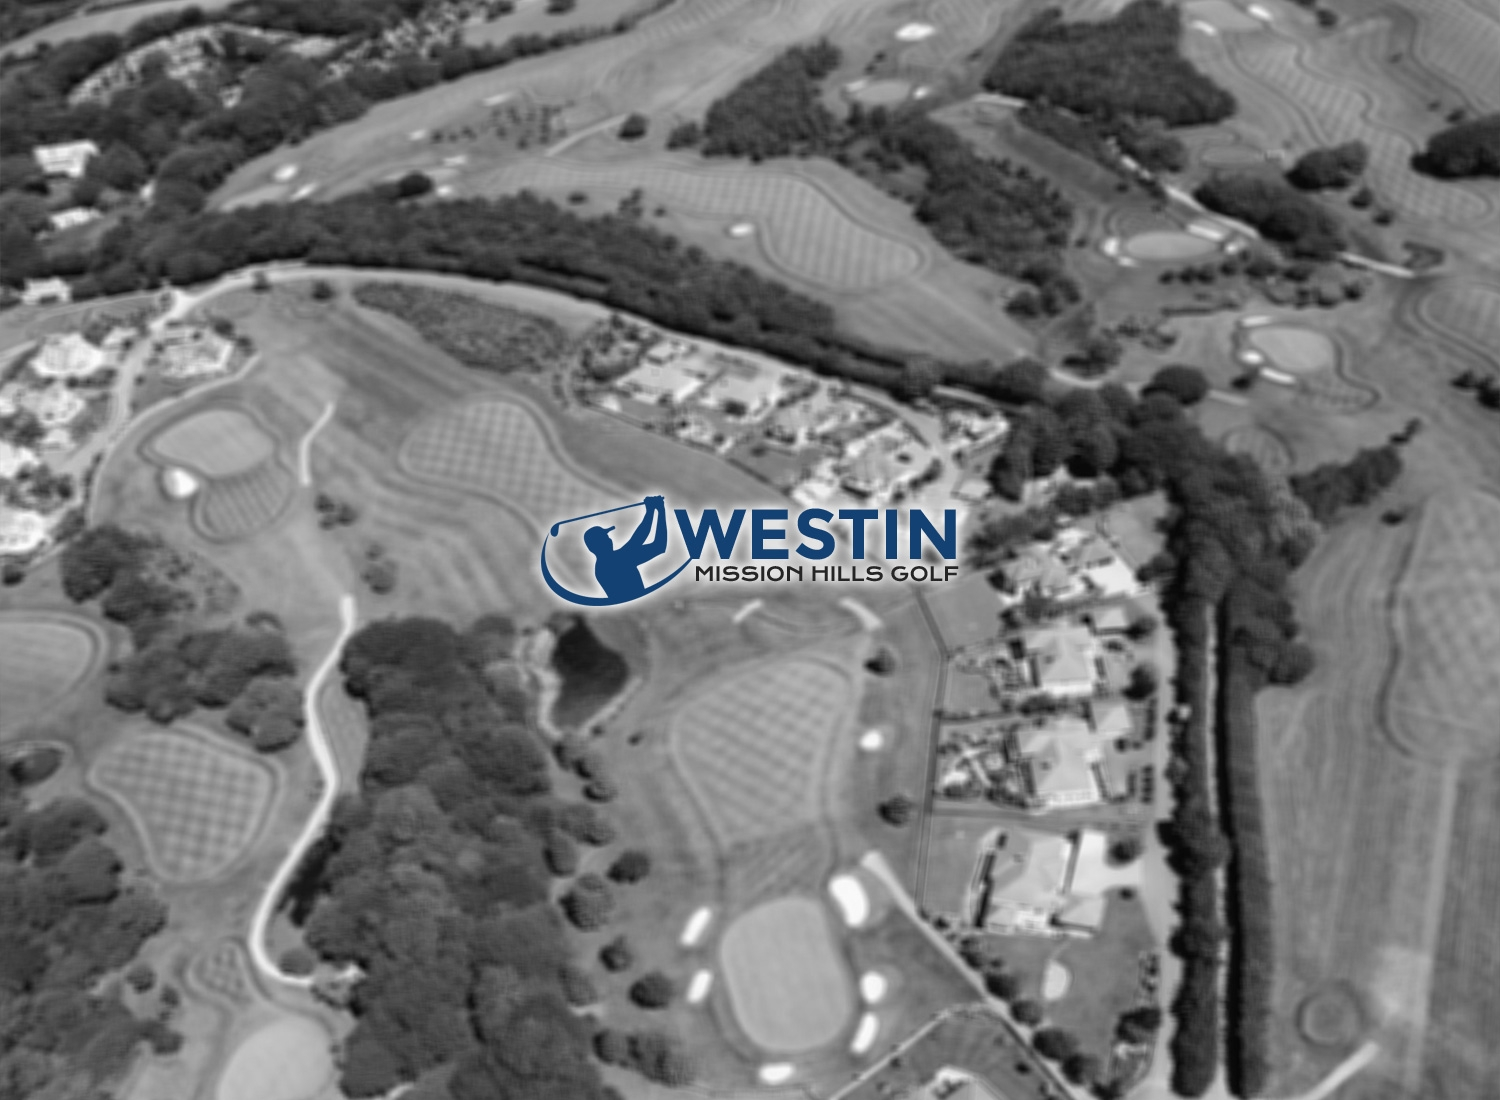 Westin Mission Hills Golf (@westinmissionhillsgolf) Cover Image